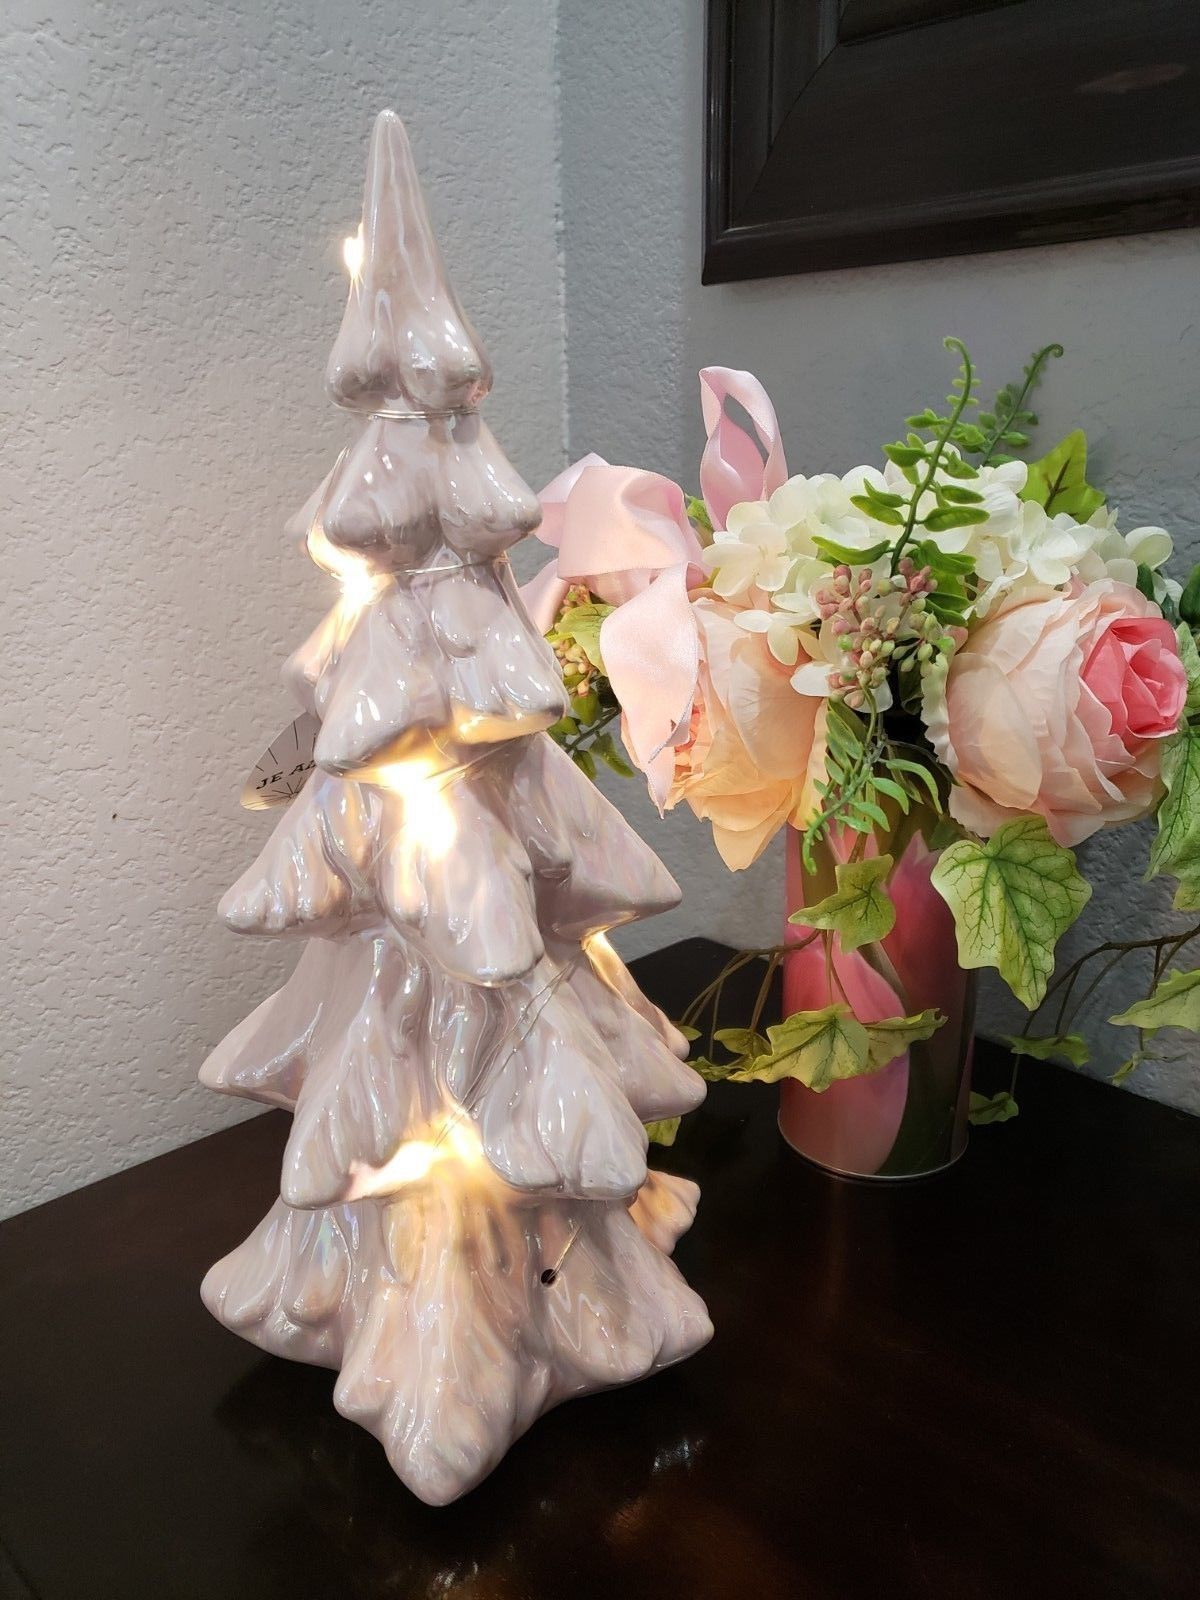 Primary image for Christmas Shabby Chic Ceramic Pink Iridescent Lighted Christmas Tree Decor 14""